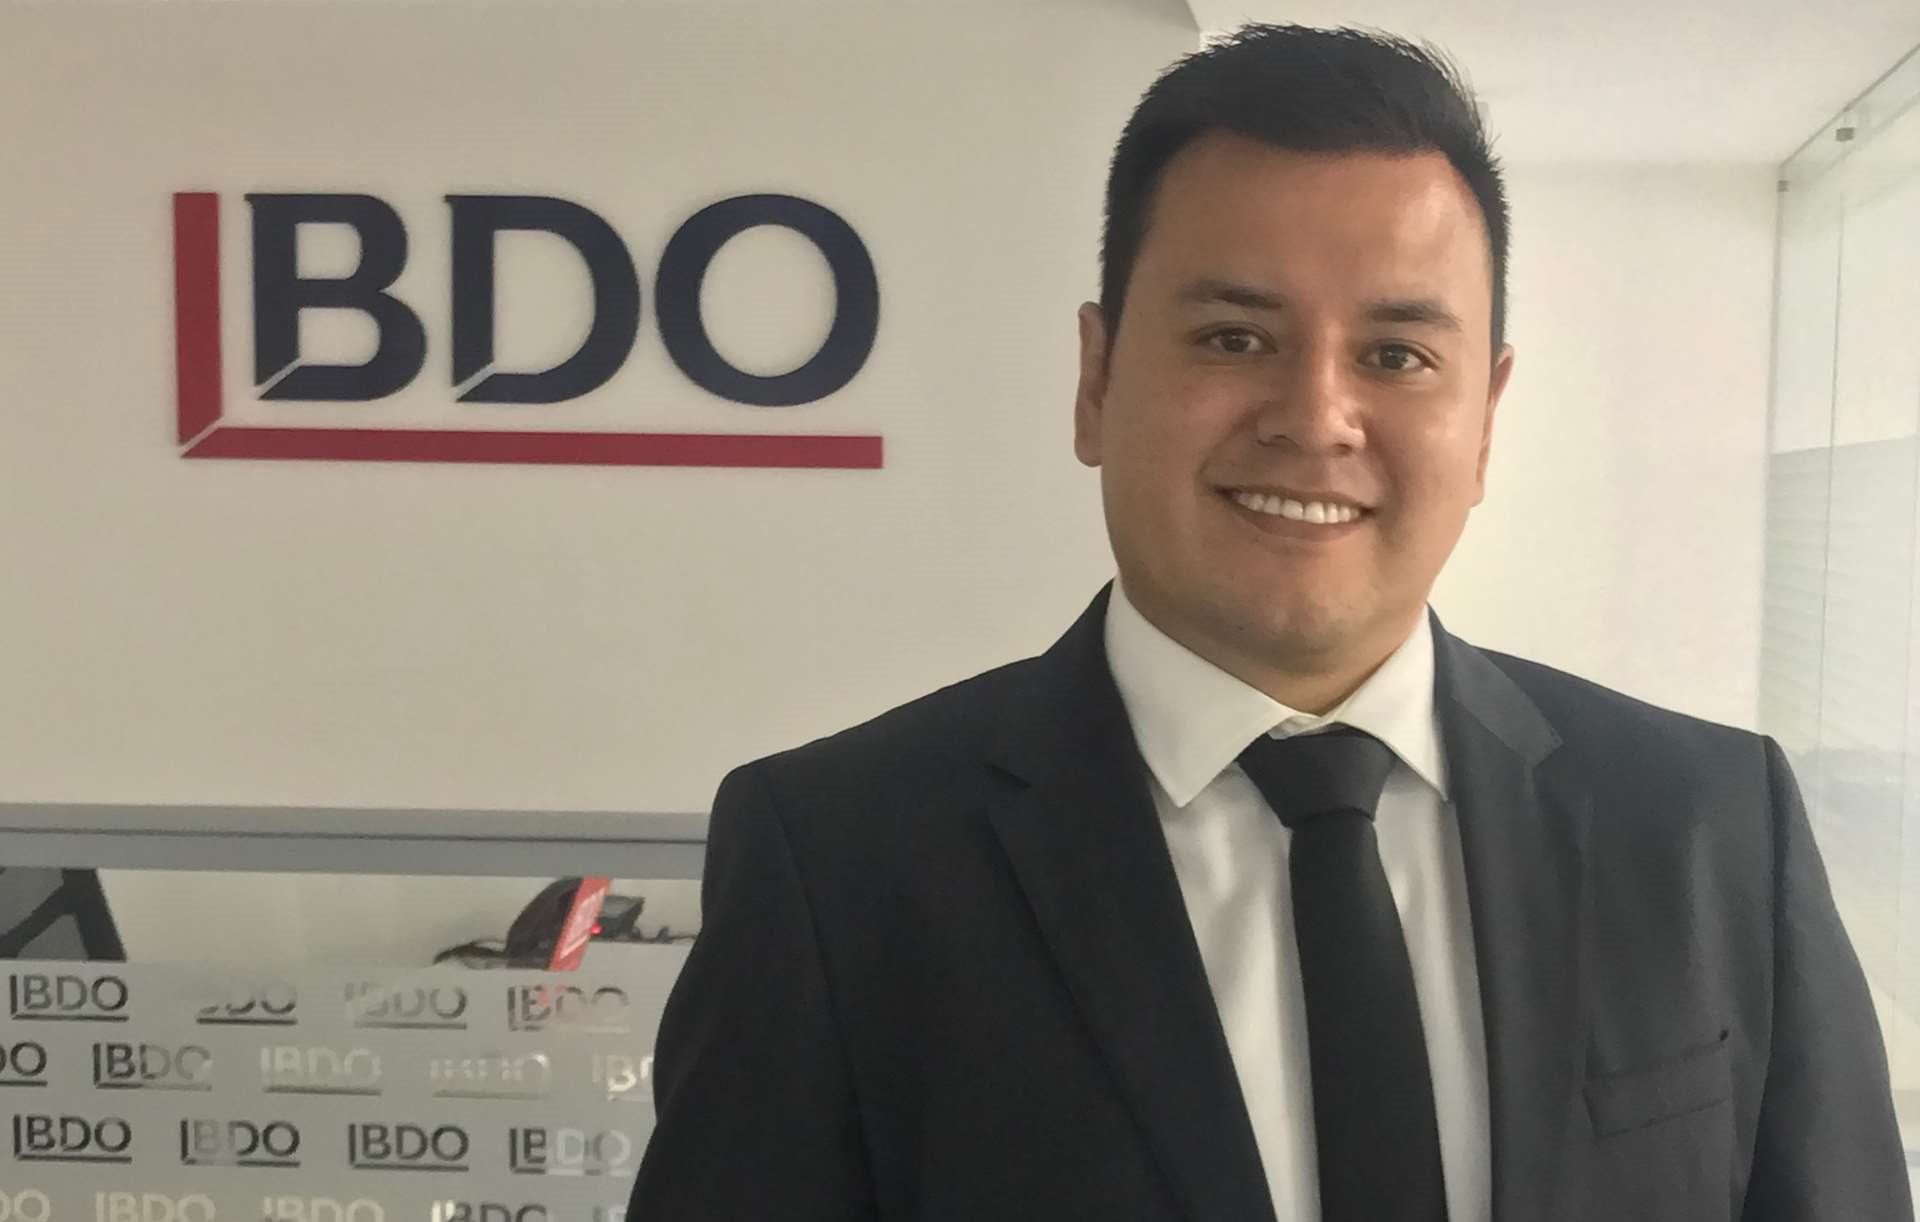 Luis Castillo, BDO Ecuador, Socio Risk Advisory Services (RAS) & IFRS Country Leader